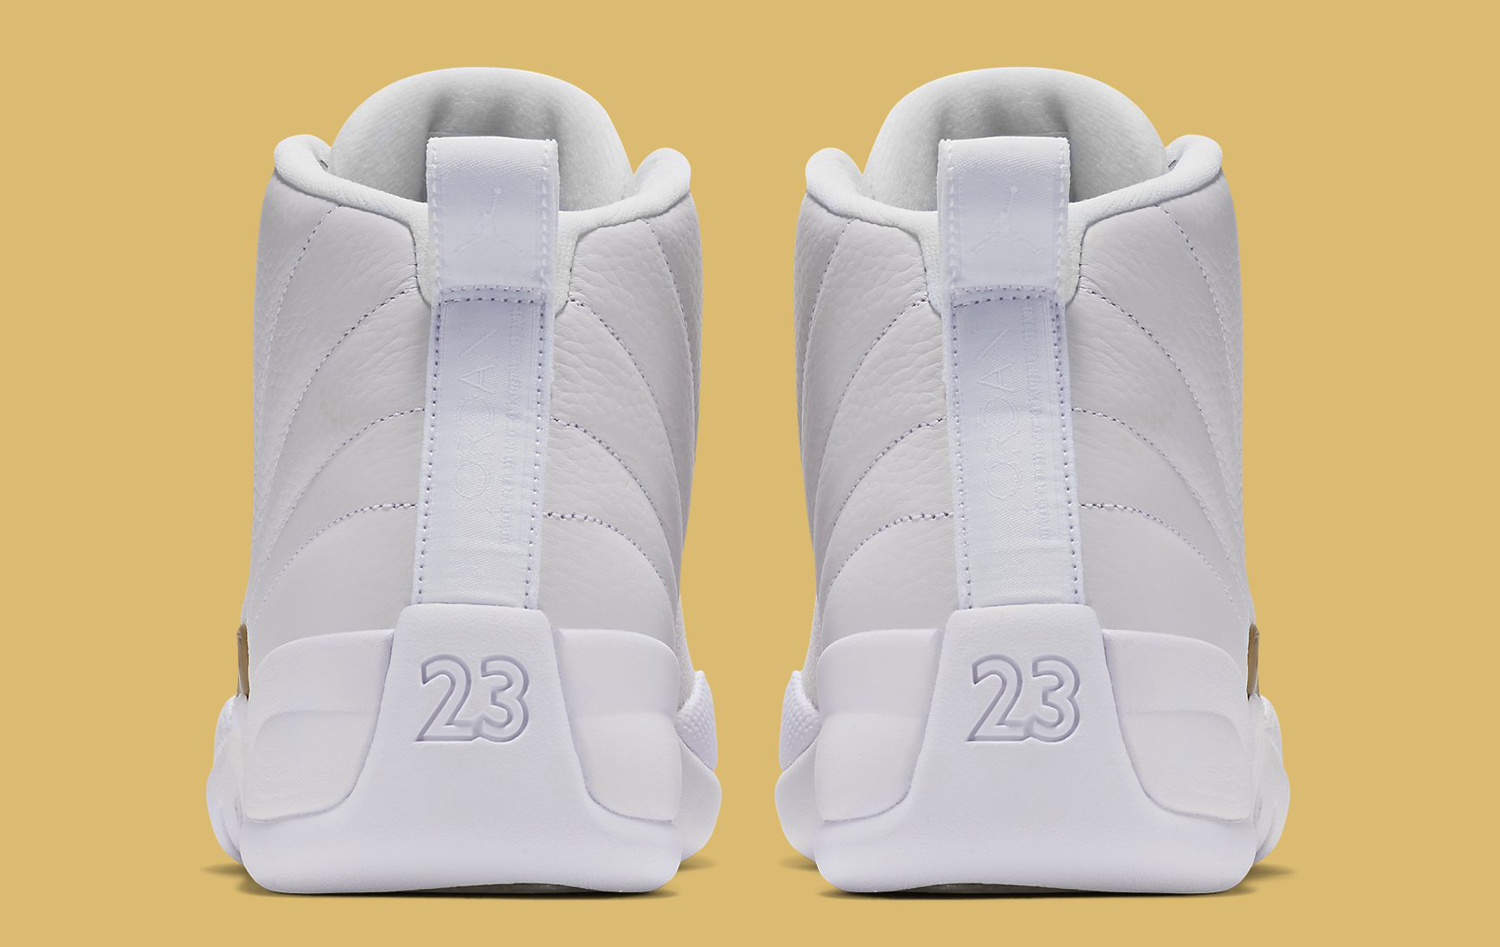 86a27945100 OVO Air Jordan 12 Postponed